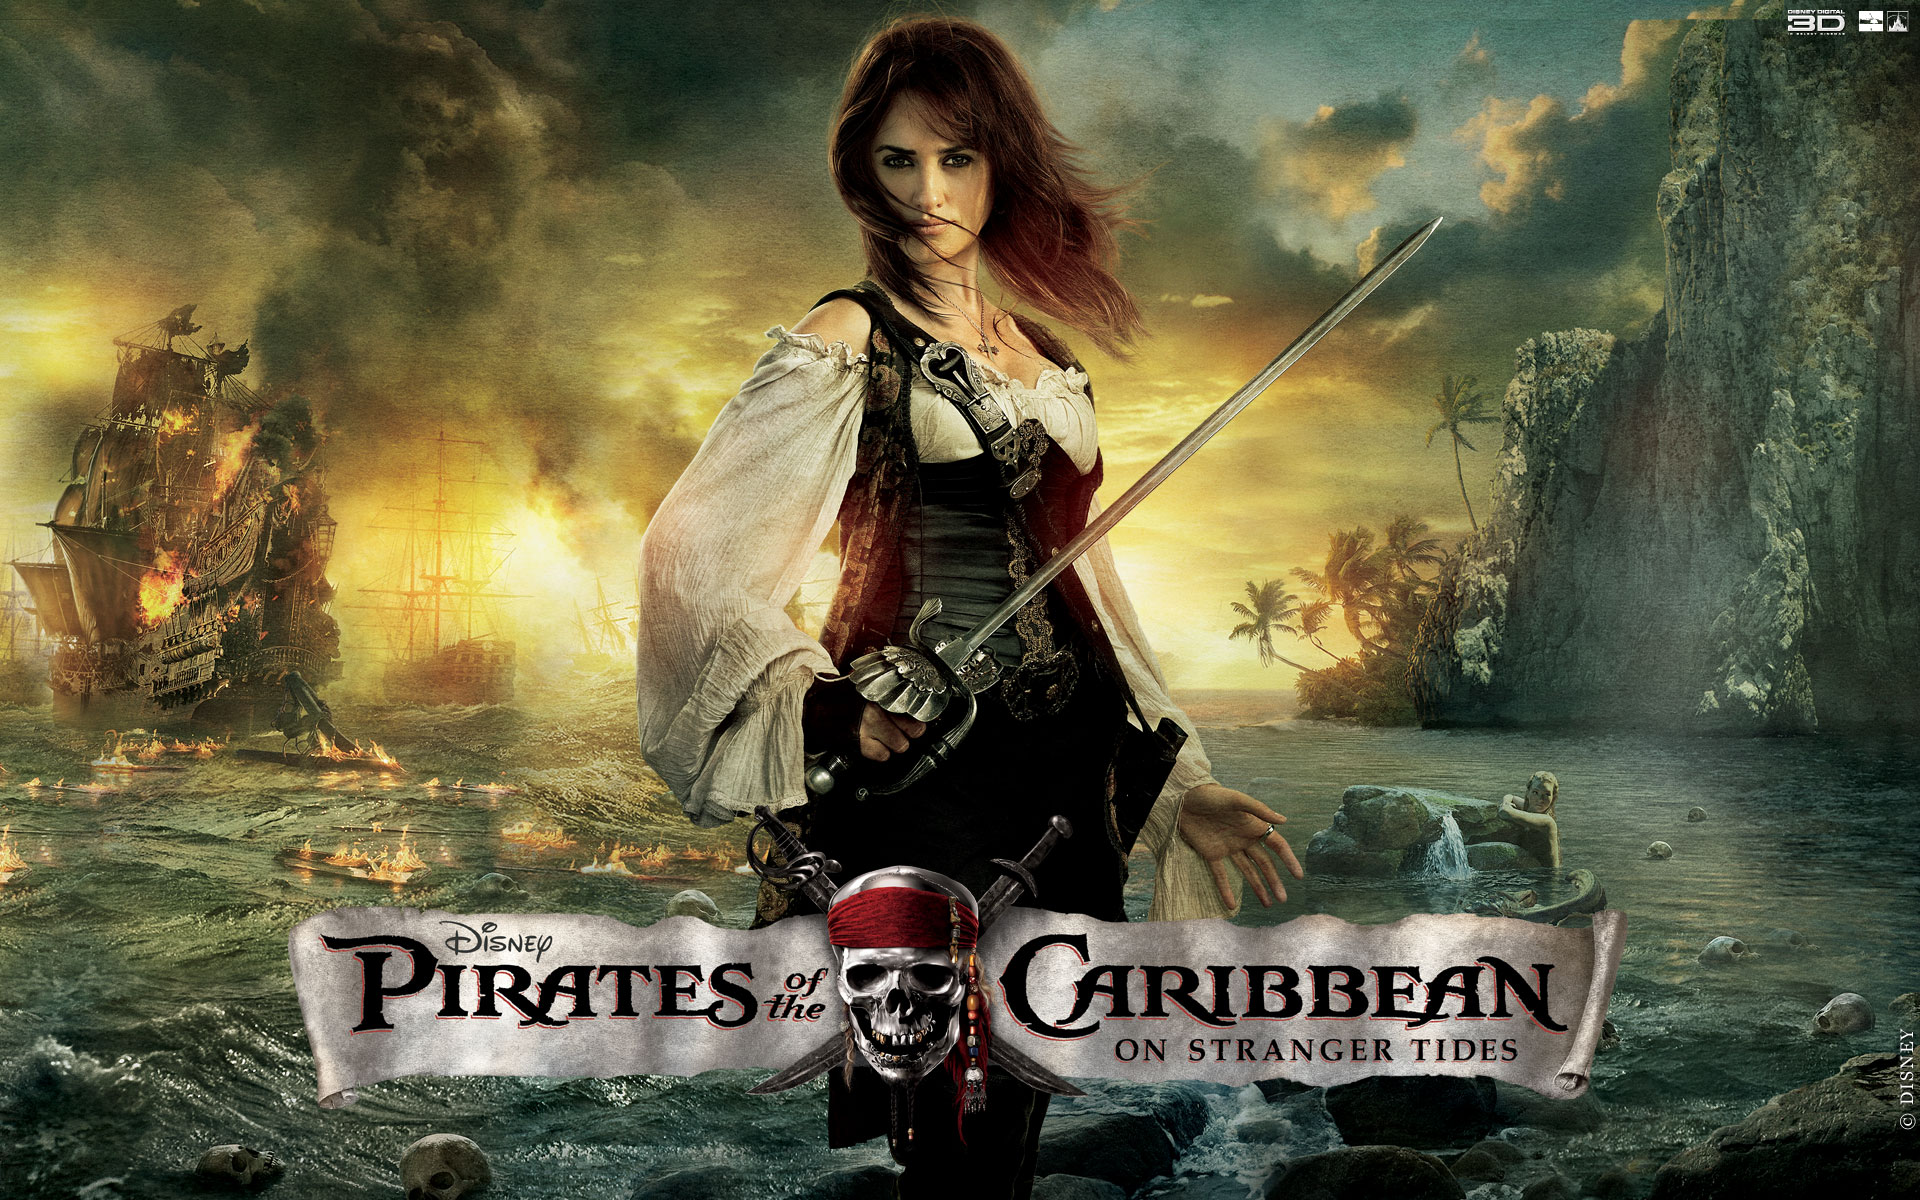 pirates of the caribbean 4downloadswallpaper widescreen angelicajpg 1920x1200